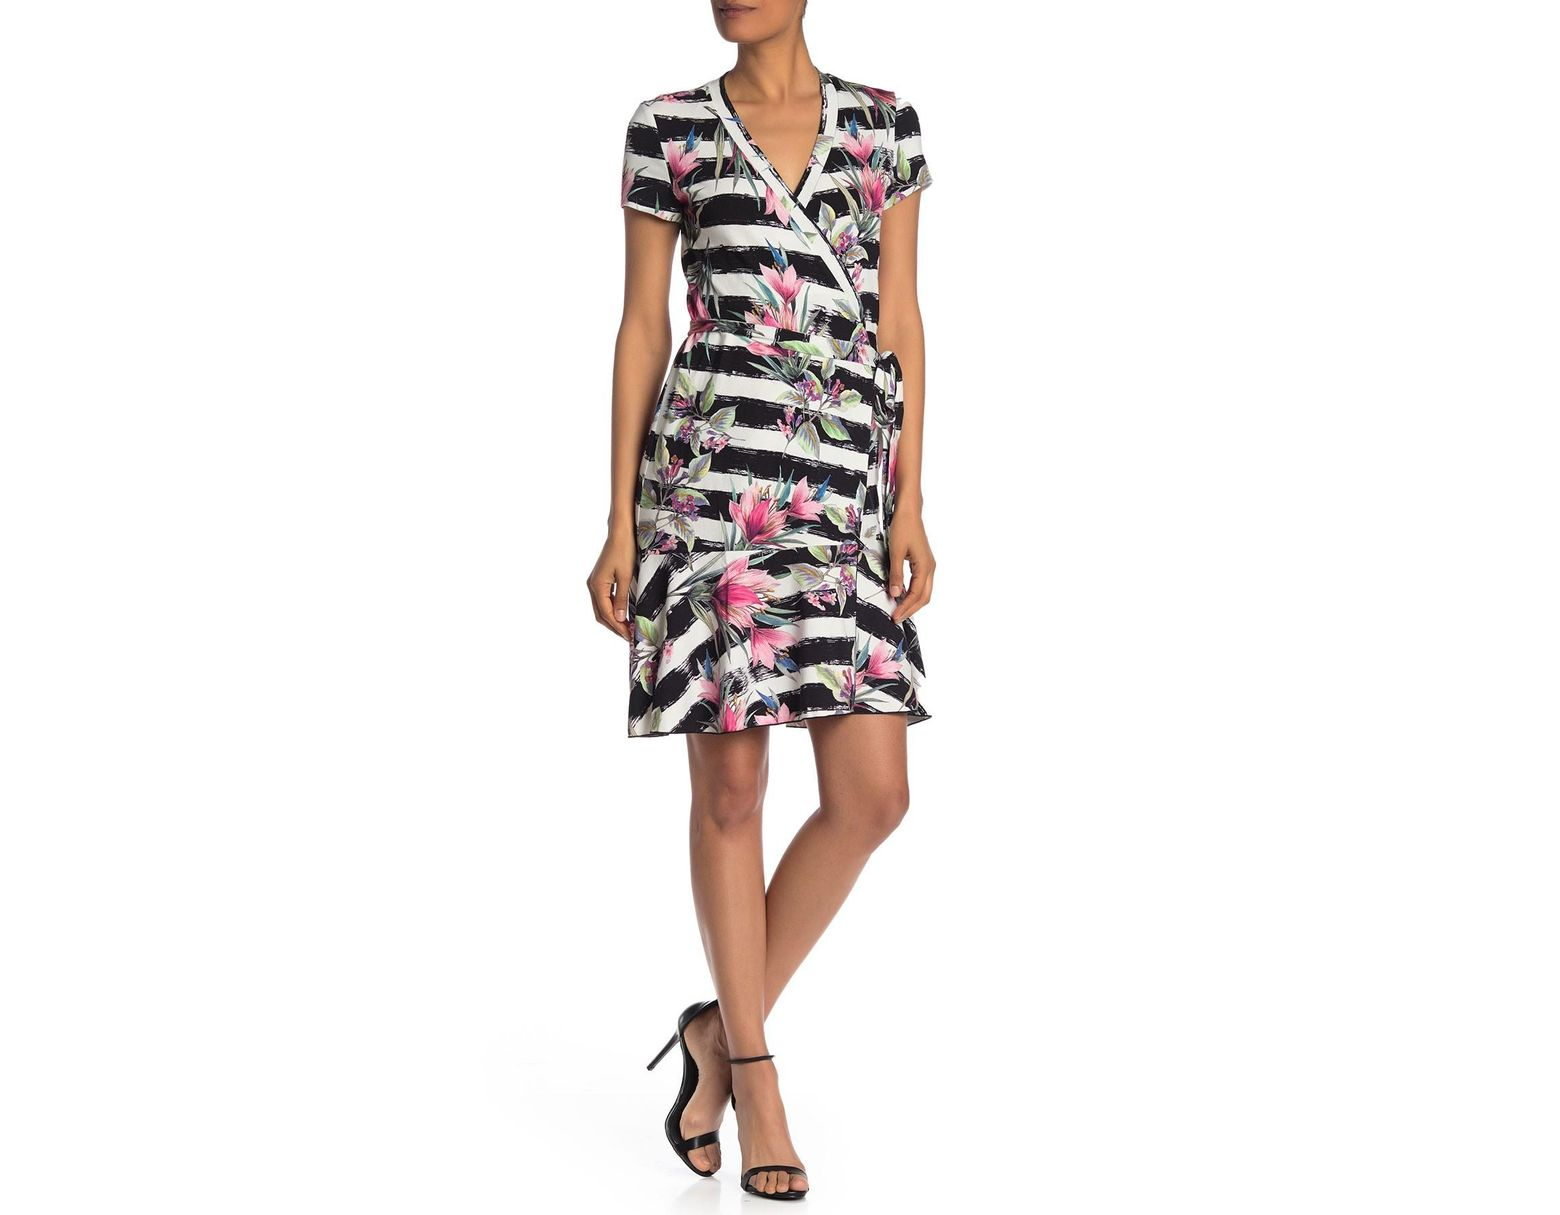 50a69a422ff Nicole Miller Claudette Stripe & Floral Print Wrap Dress in White - Save  42% - Lyst